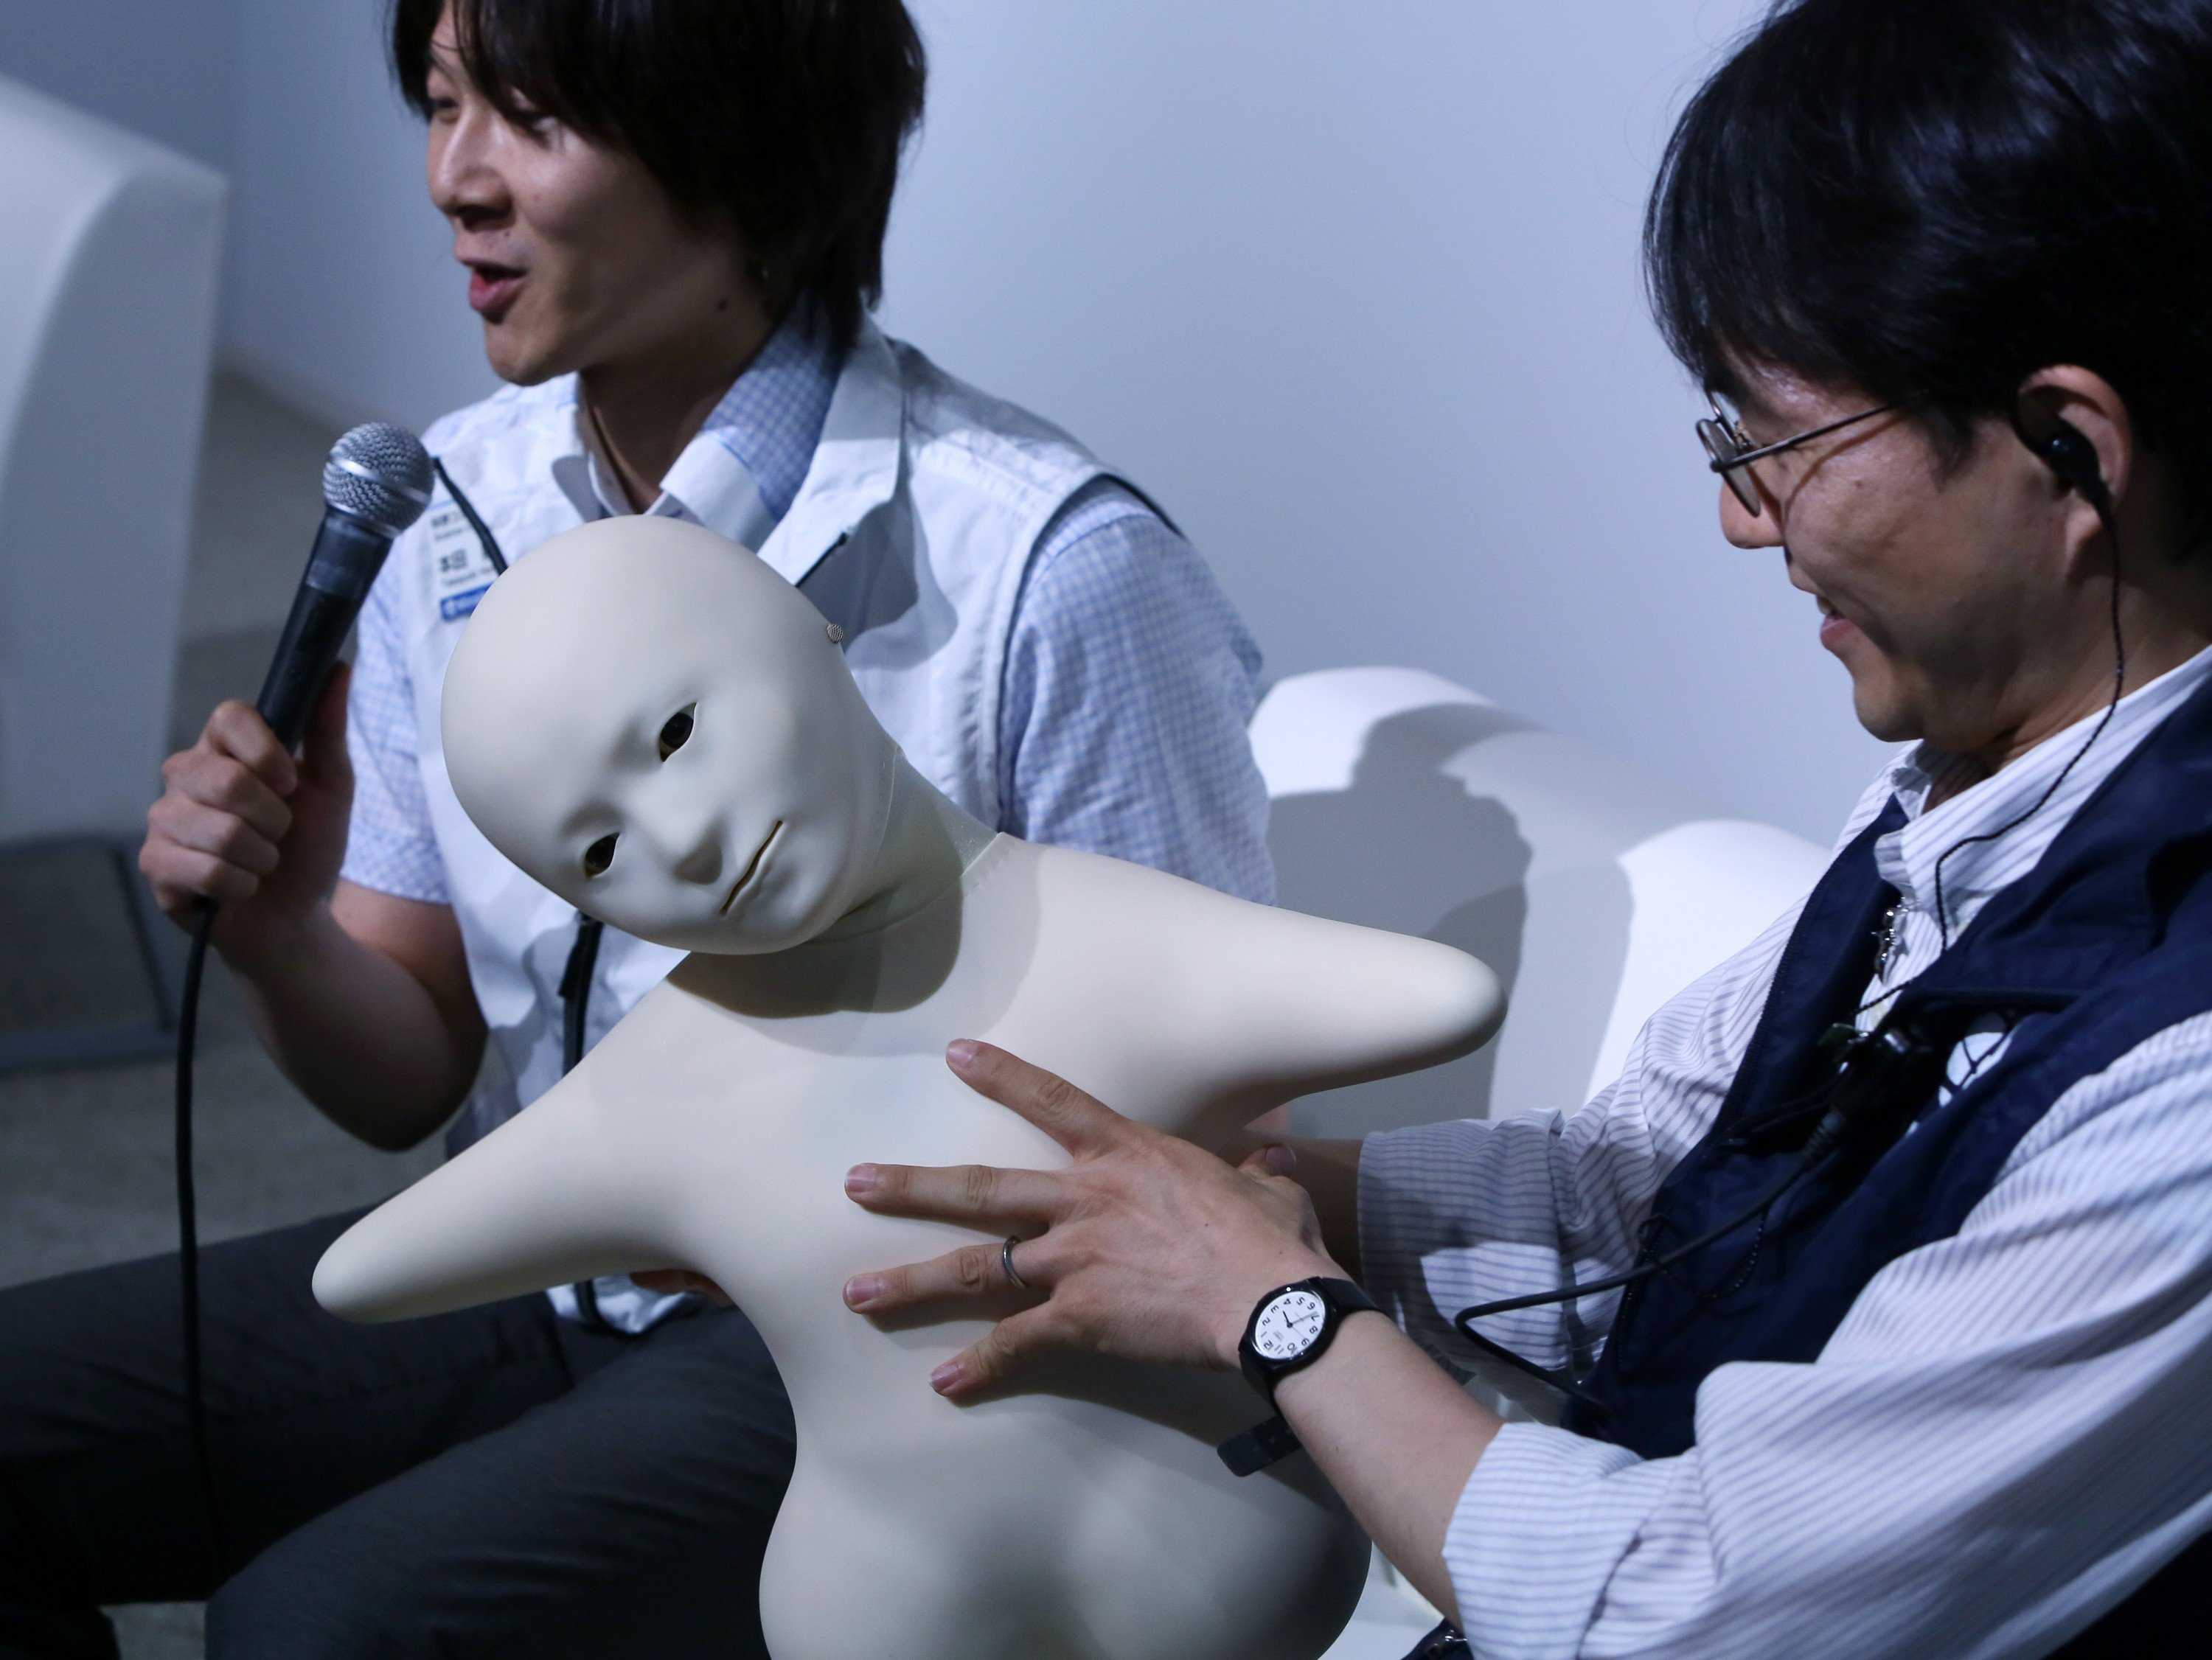 Telenoid is a teleoperated android robot with a minimal design, created as an attempt to embody the minimum physical requirements for humanlike communication during a press preview at the National Museum of Emerging Science and Innovation Miraikan in Tokyo on June 24, 2014.